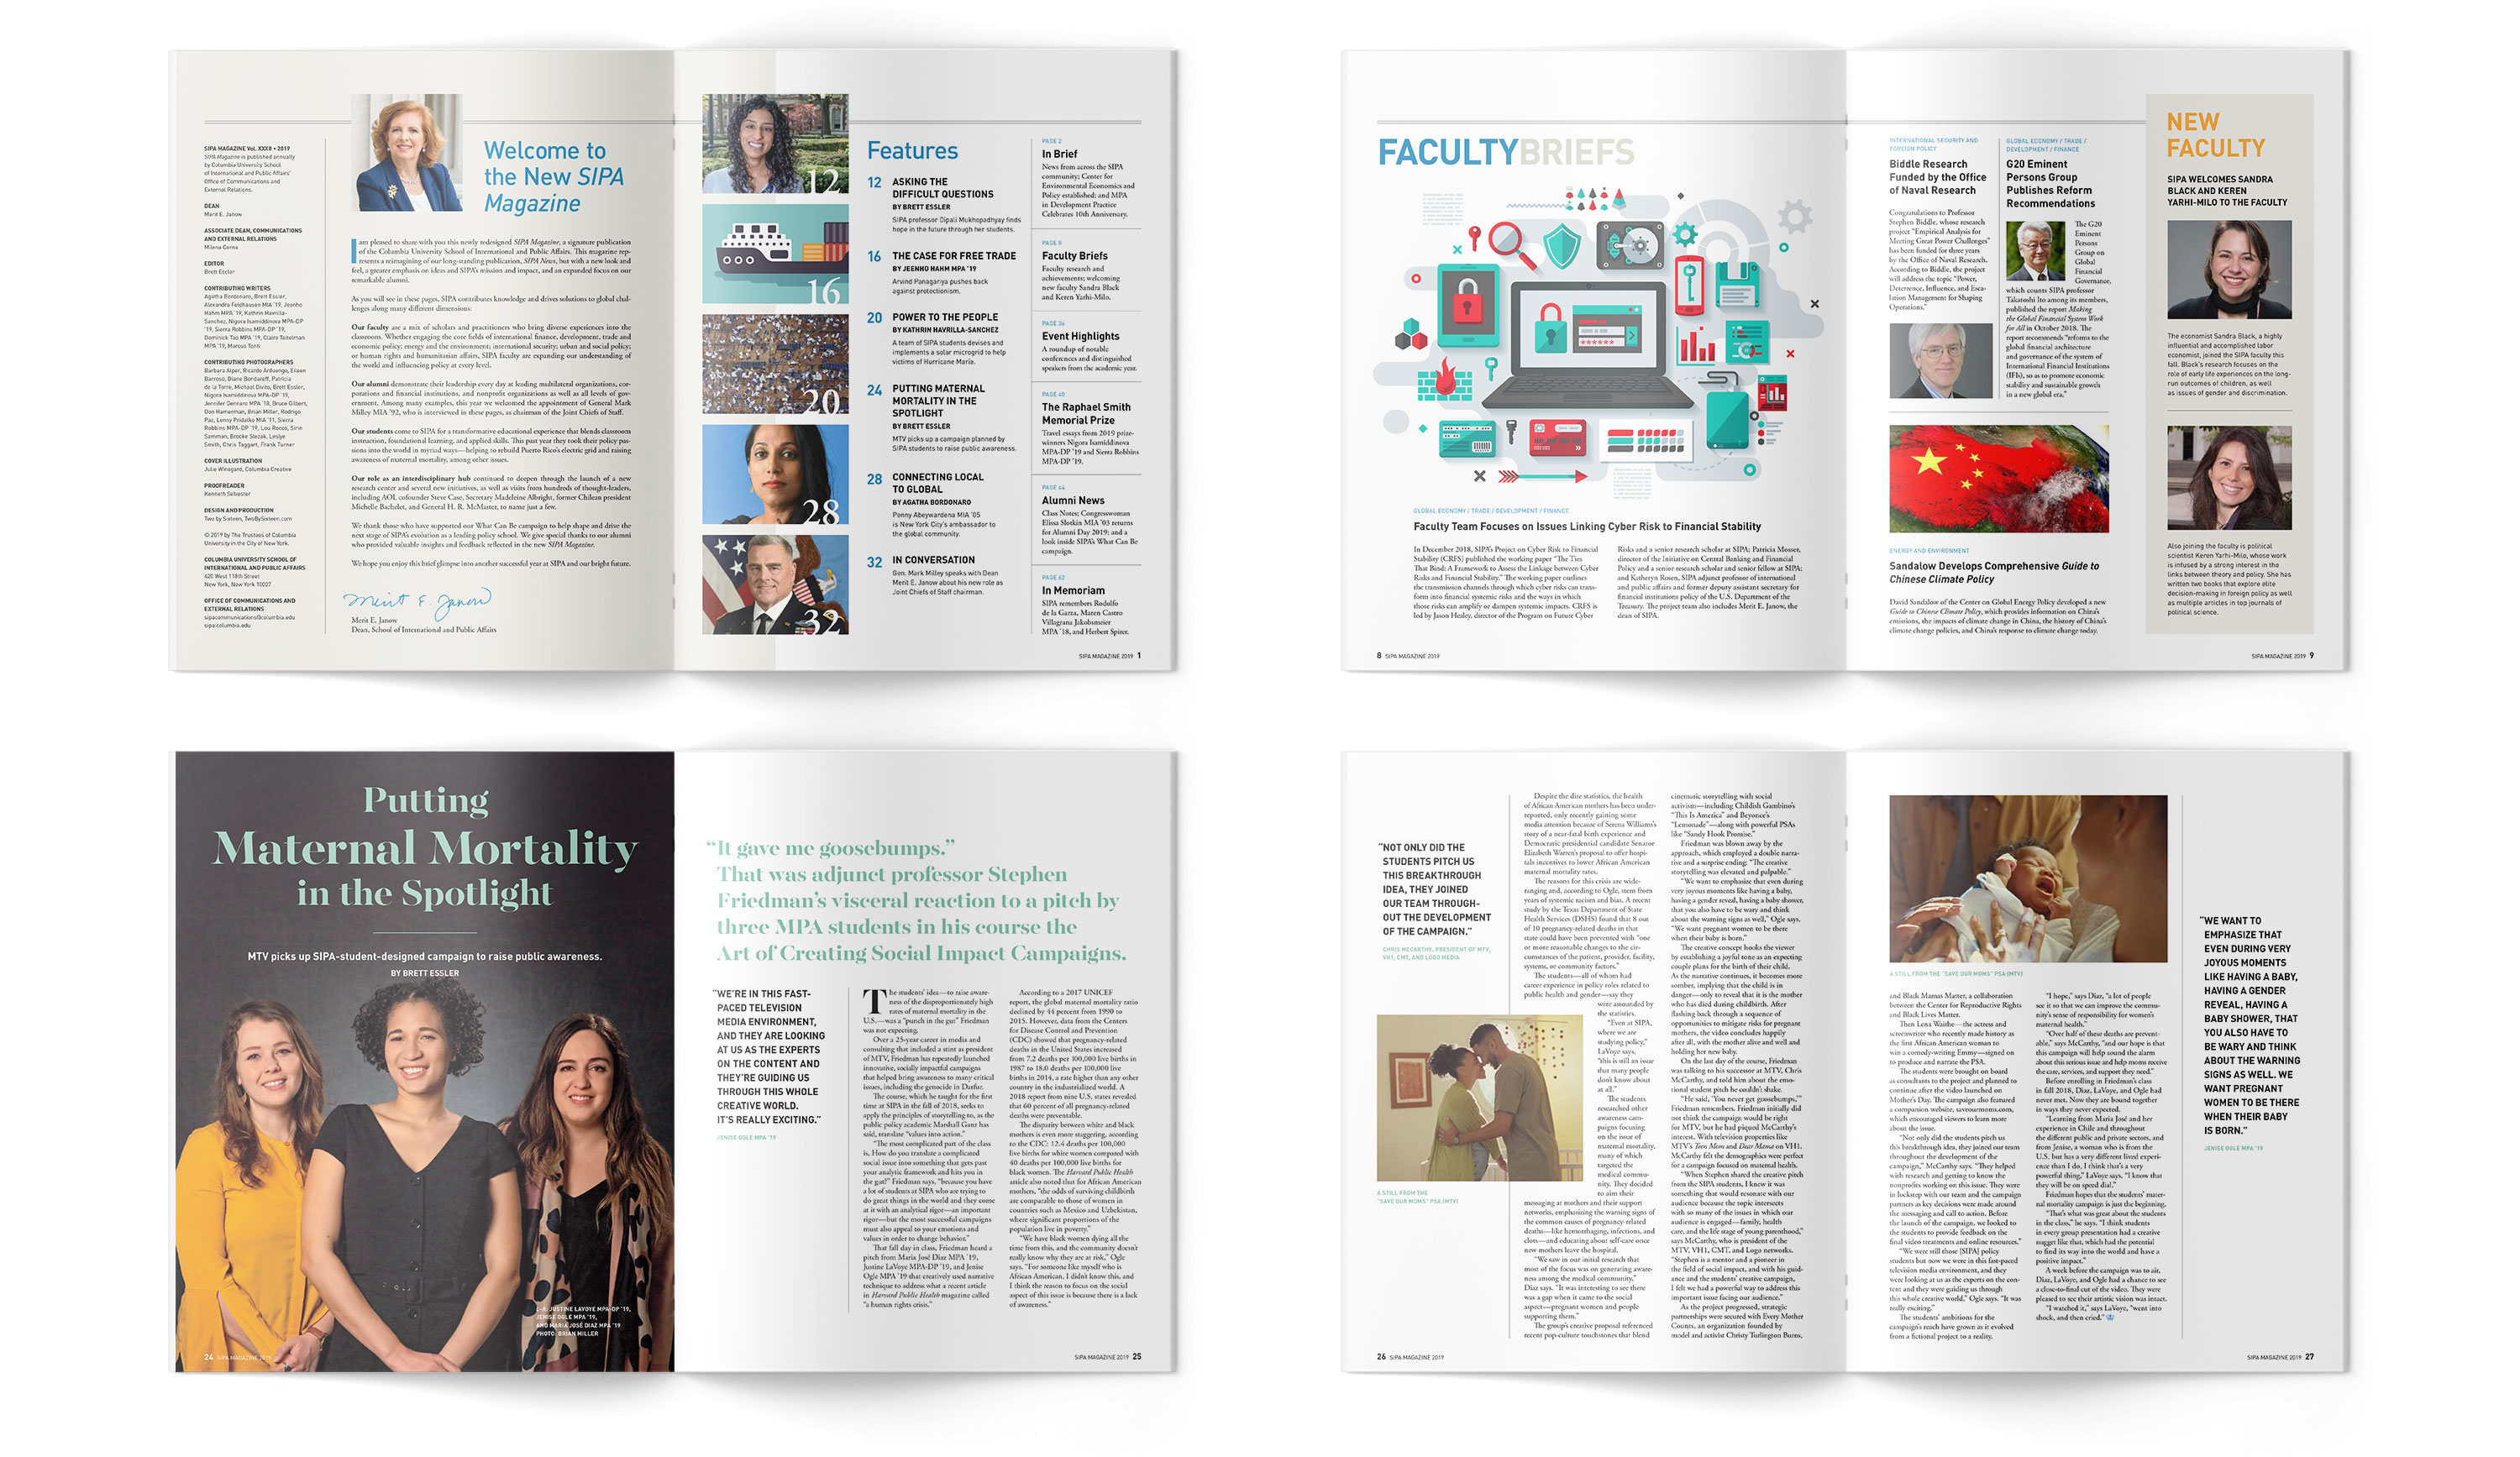 Sample spreads from SIPA Magazine, including TOC, Faculty Briefs, and Maternal Mortality feature.